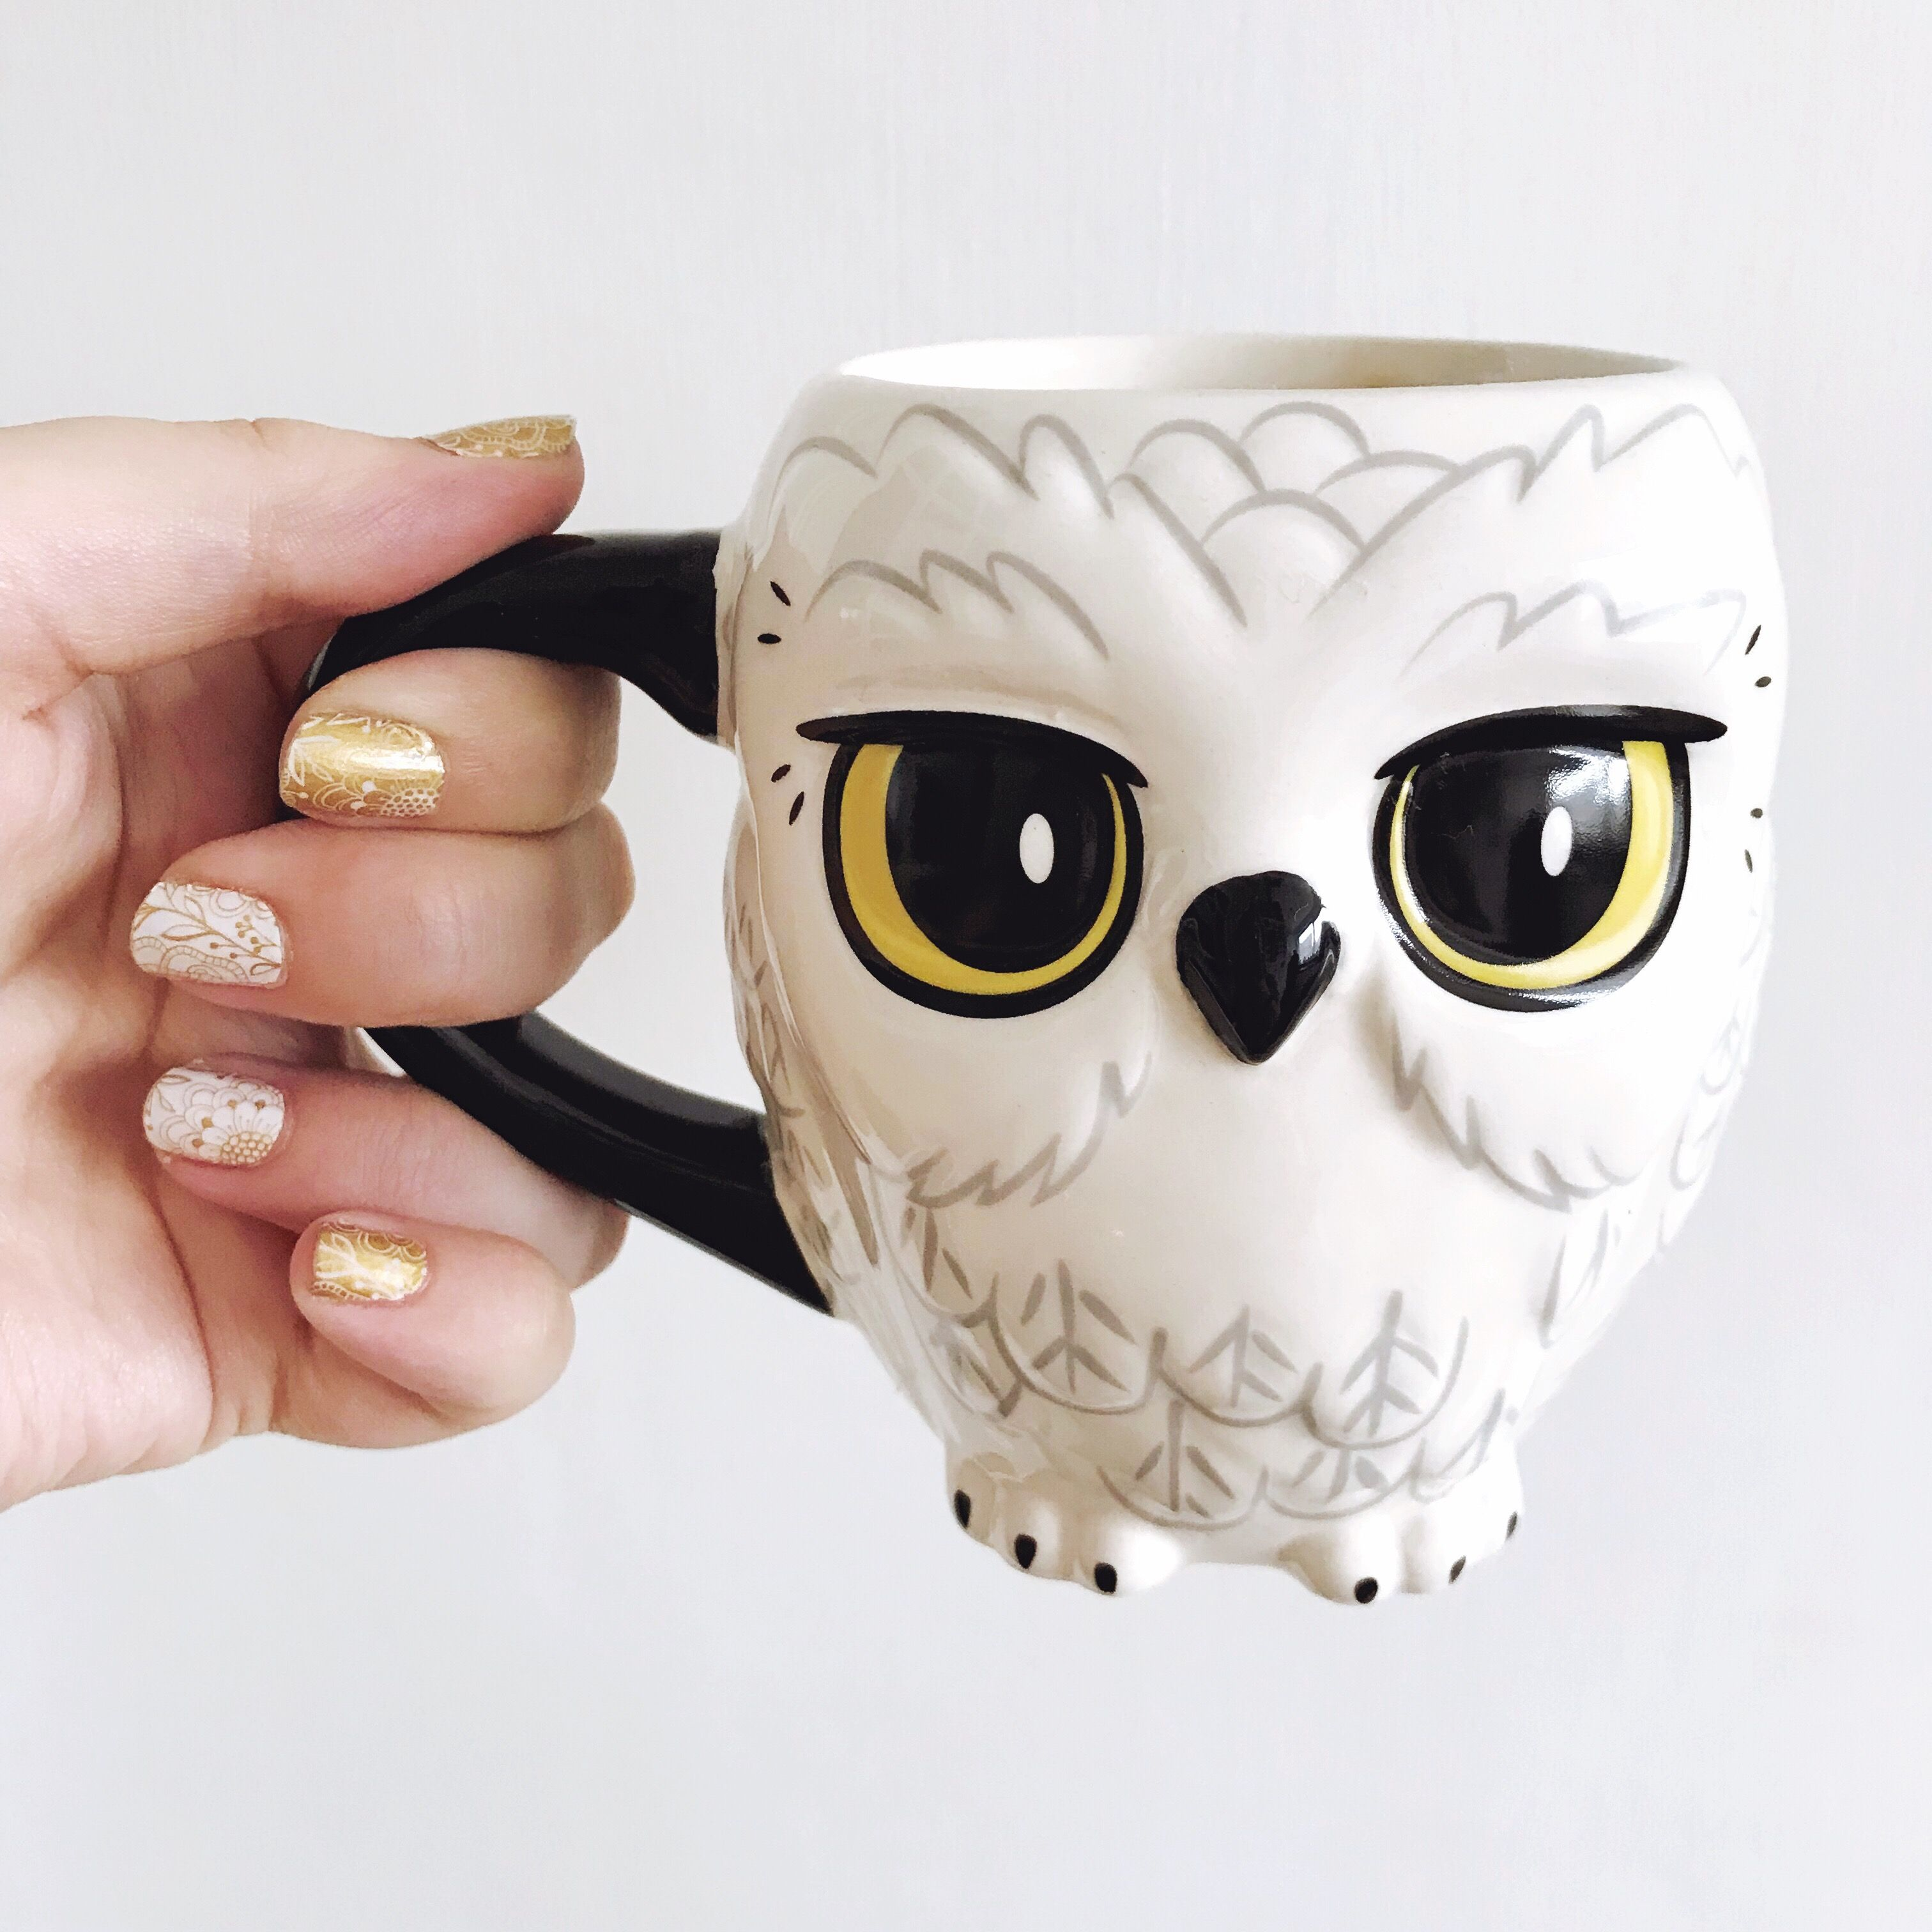 Harry Potter Bettwäsche Primark Hedwig Mug From Primark Honeybee Nail Wraps By Thumbsup